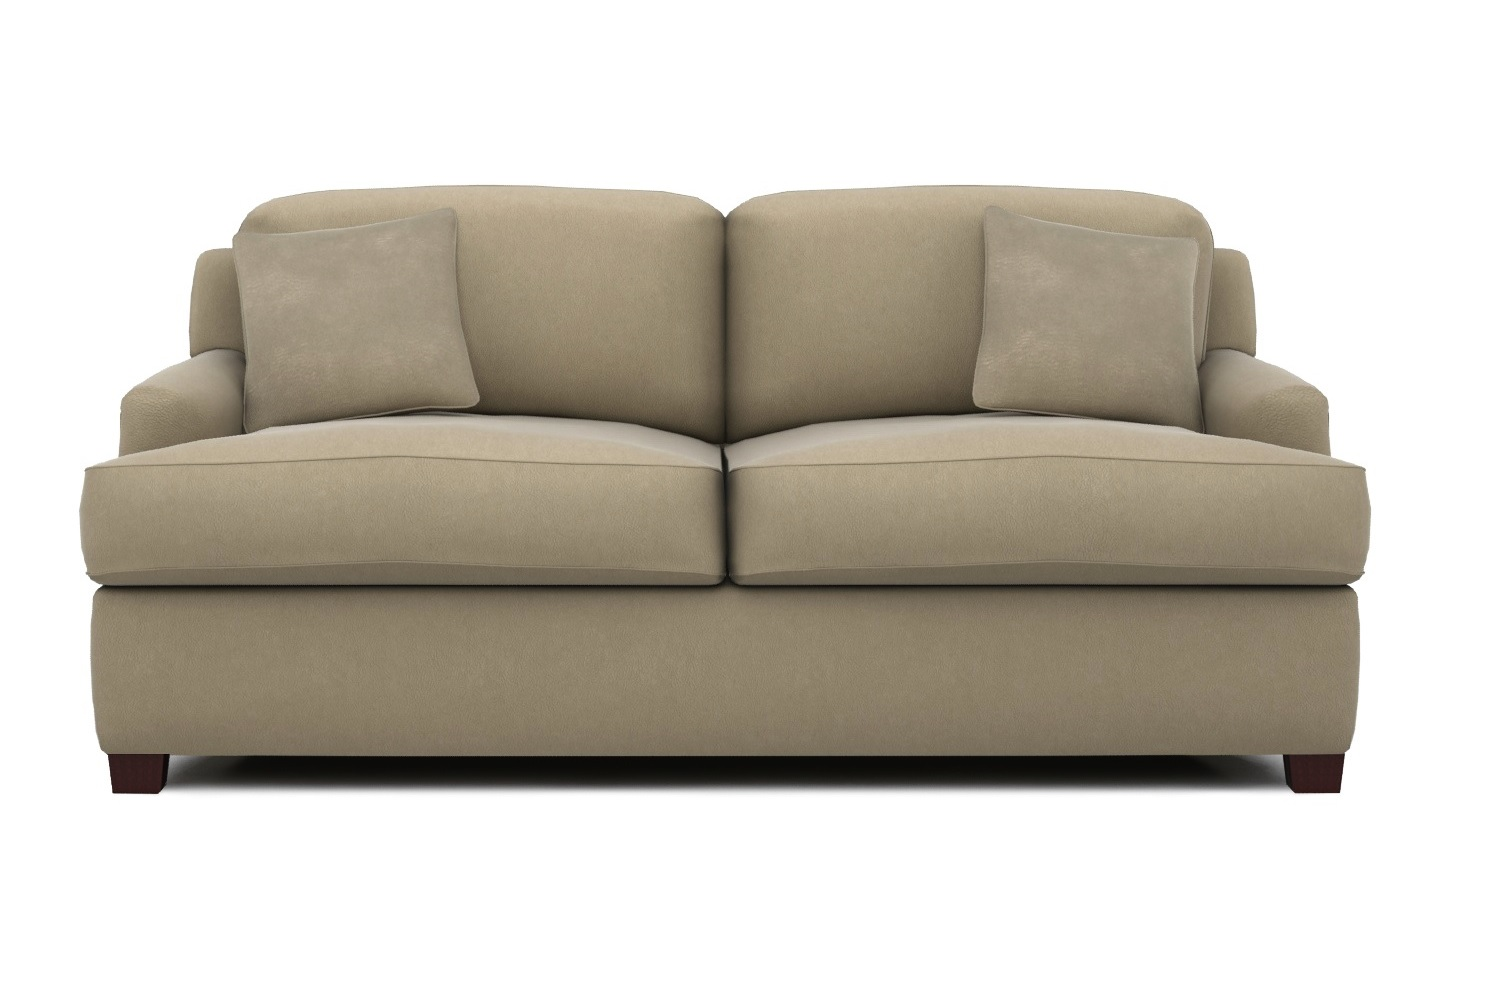 most durable sofa brands 4 seater bed sofas awesome couches 21 and